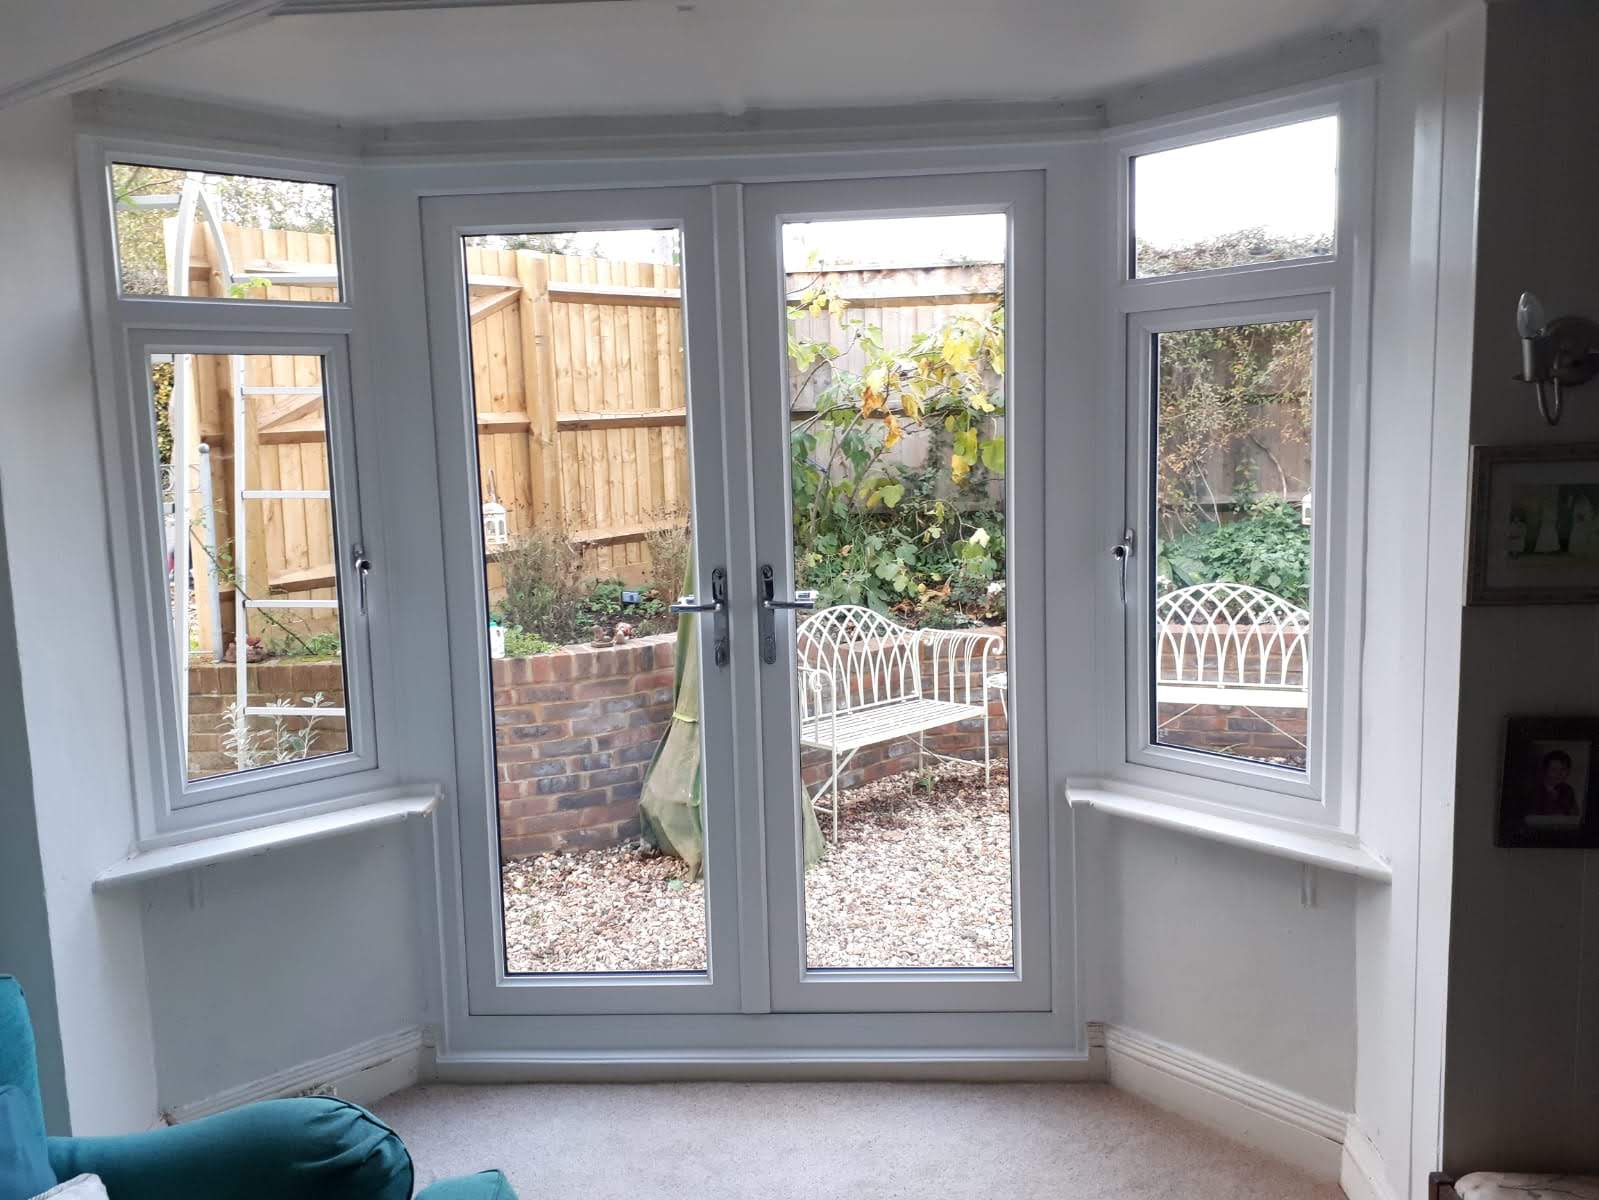 View from the inside of a room with a new PVC door installation.